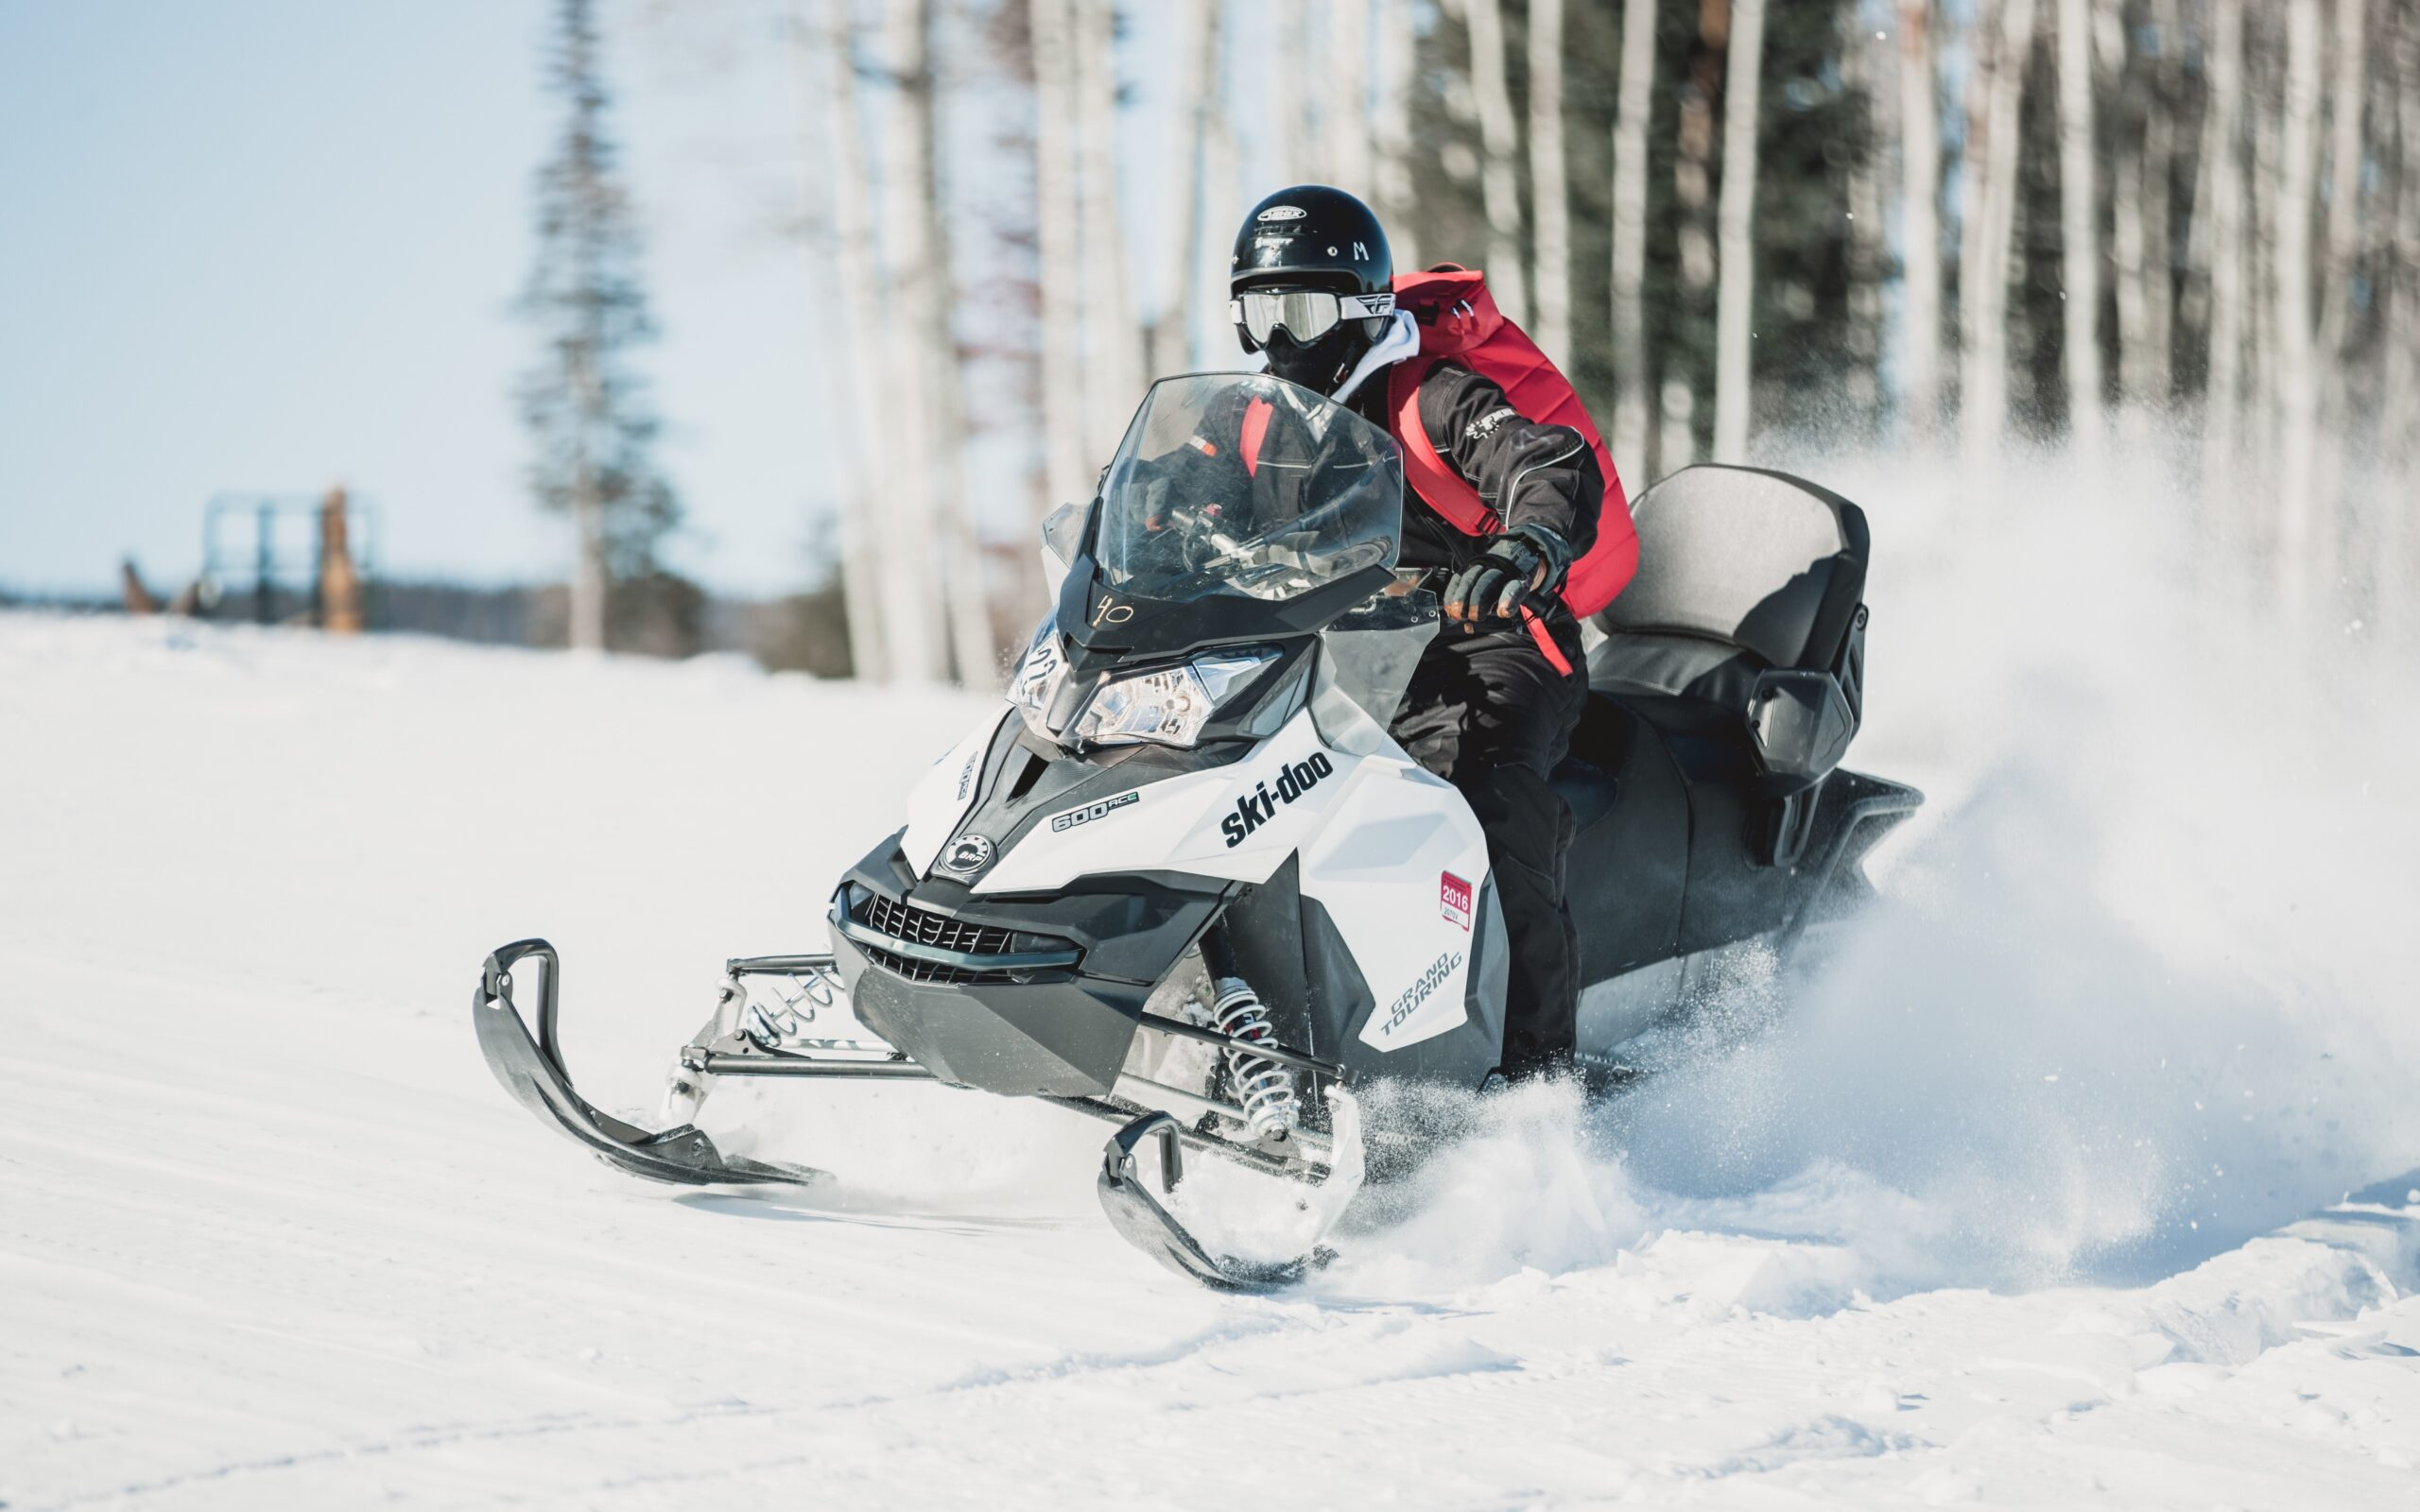 Snowmobiler Riding Across Snow Covered Field